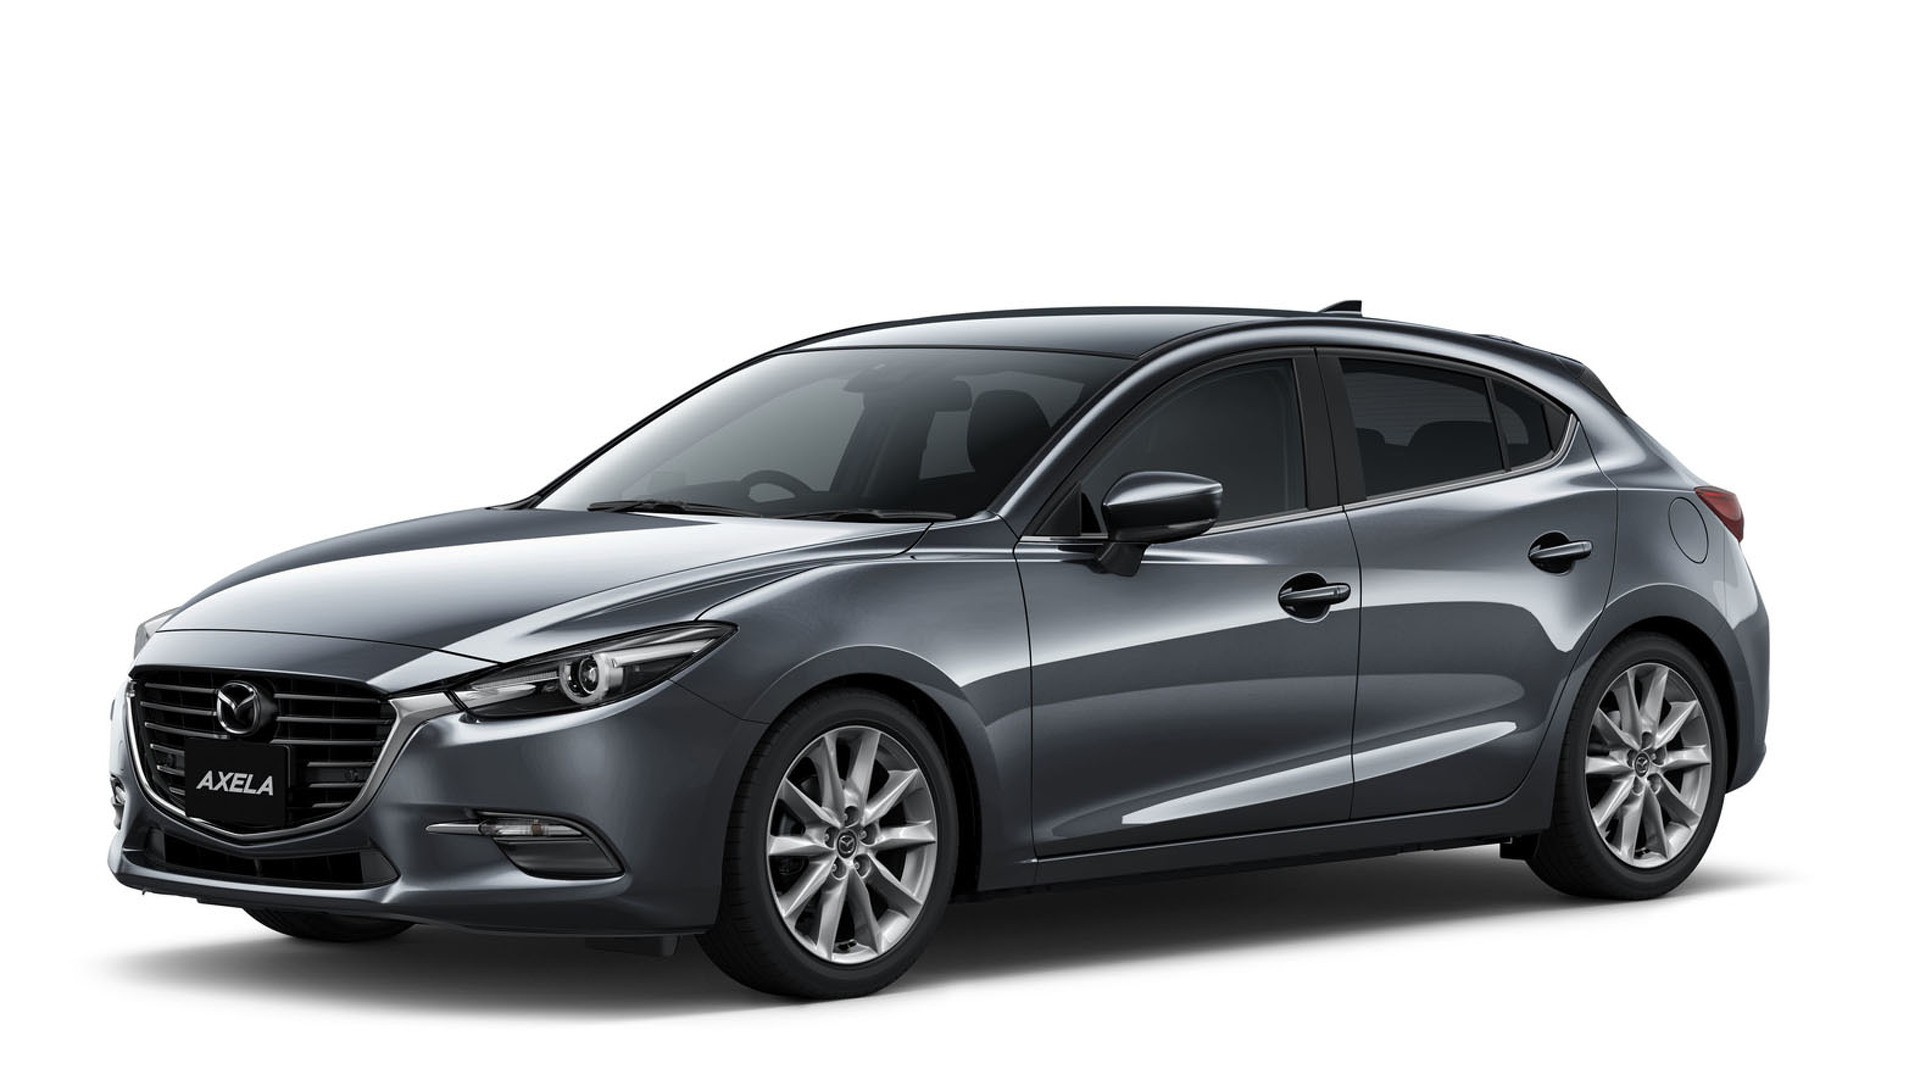 2018 Mazda3 To Introduce Hcci Engine Promises 30 Better Fuel